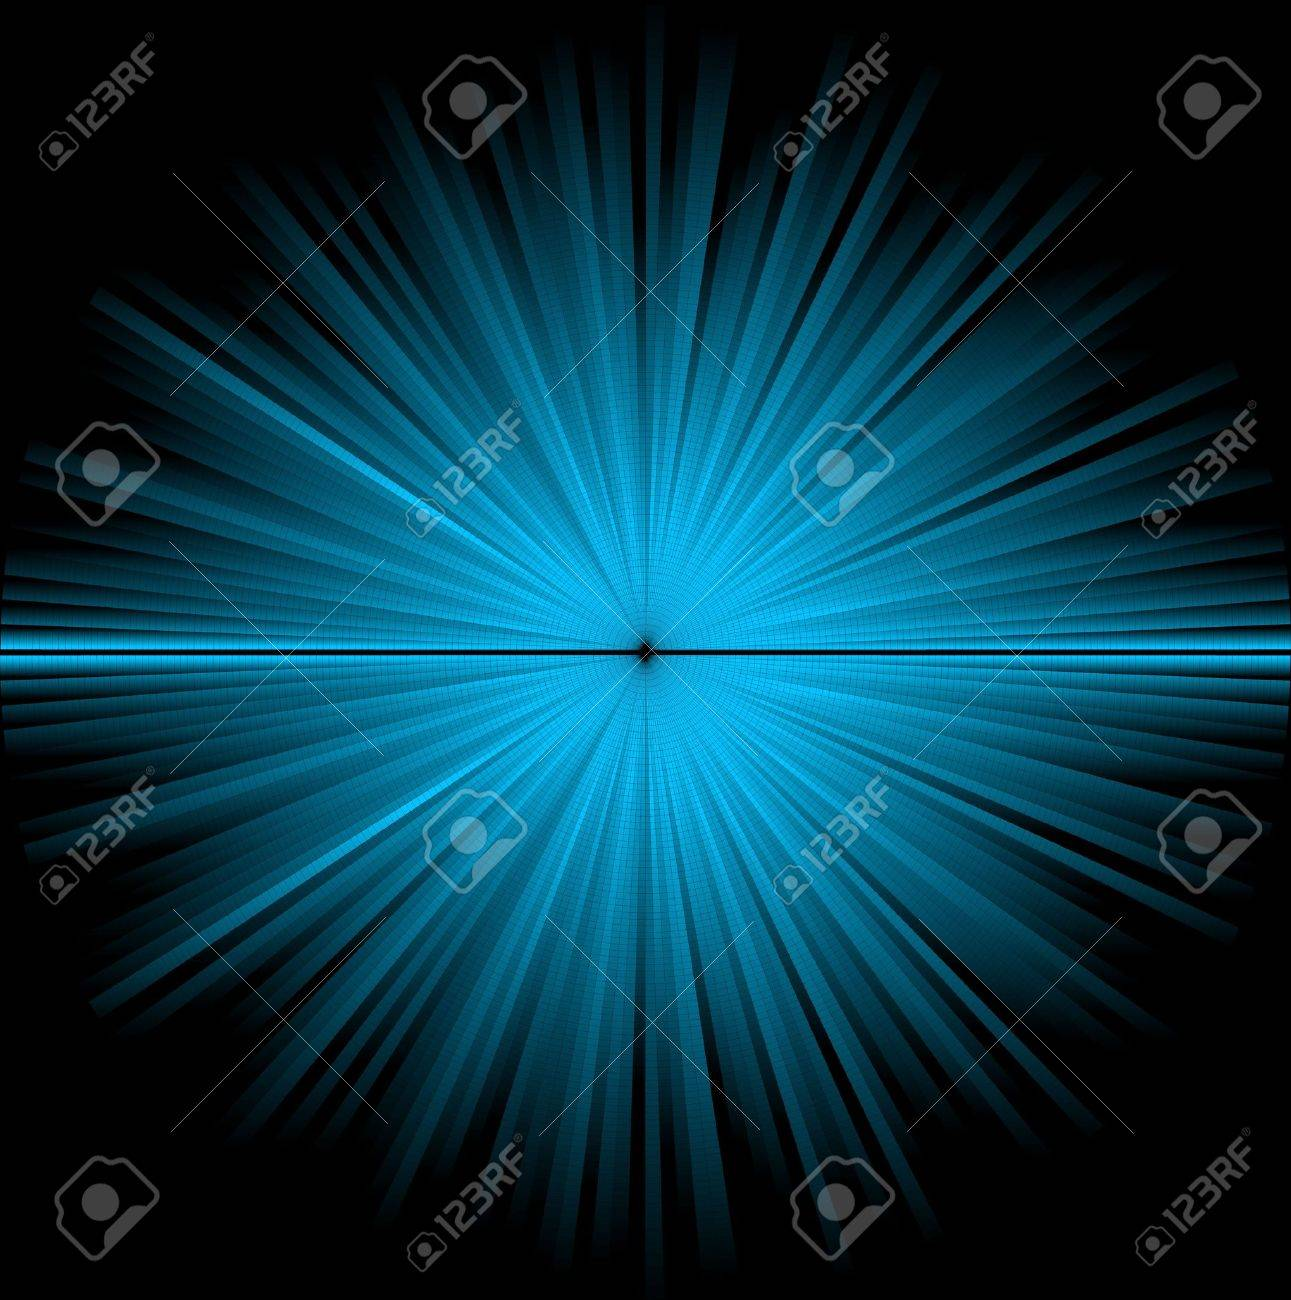 Abstract blue background - star in the cosmos Stock Photo - 5508100